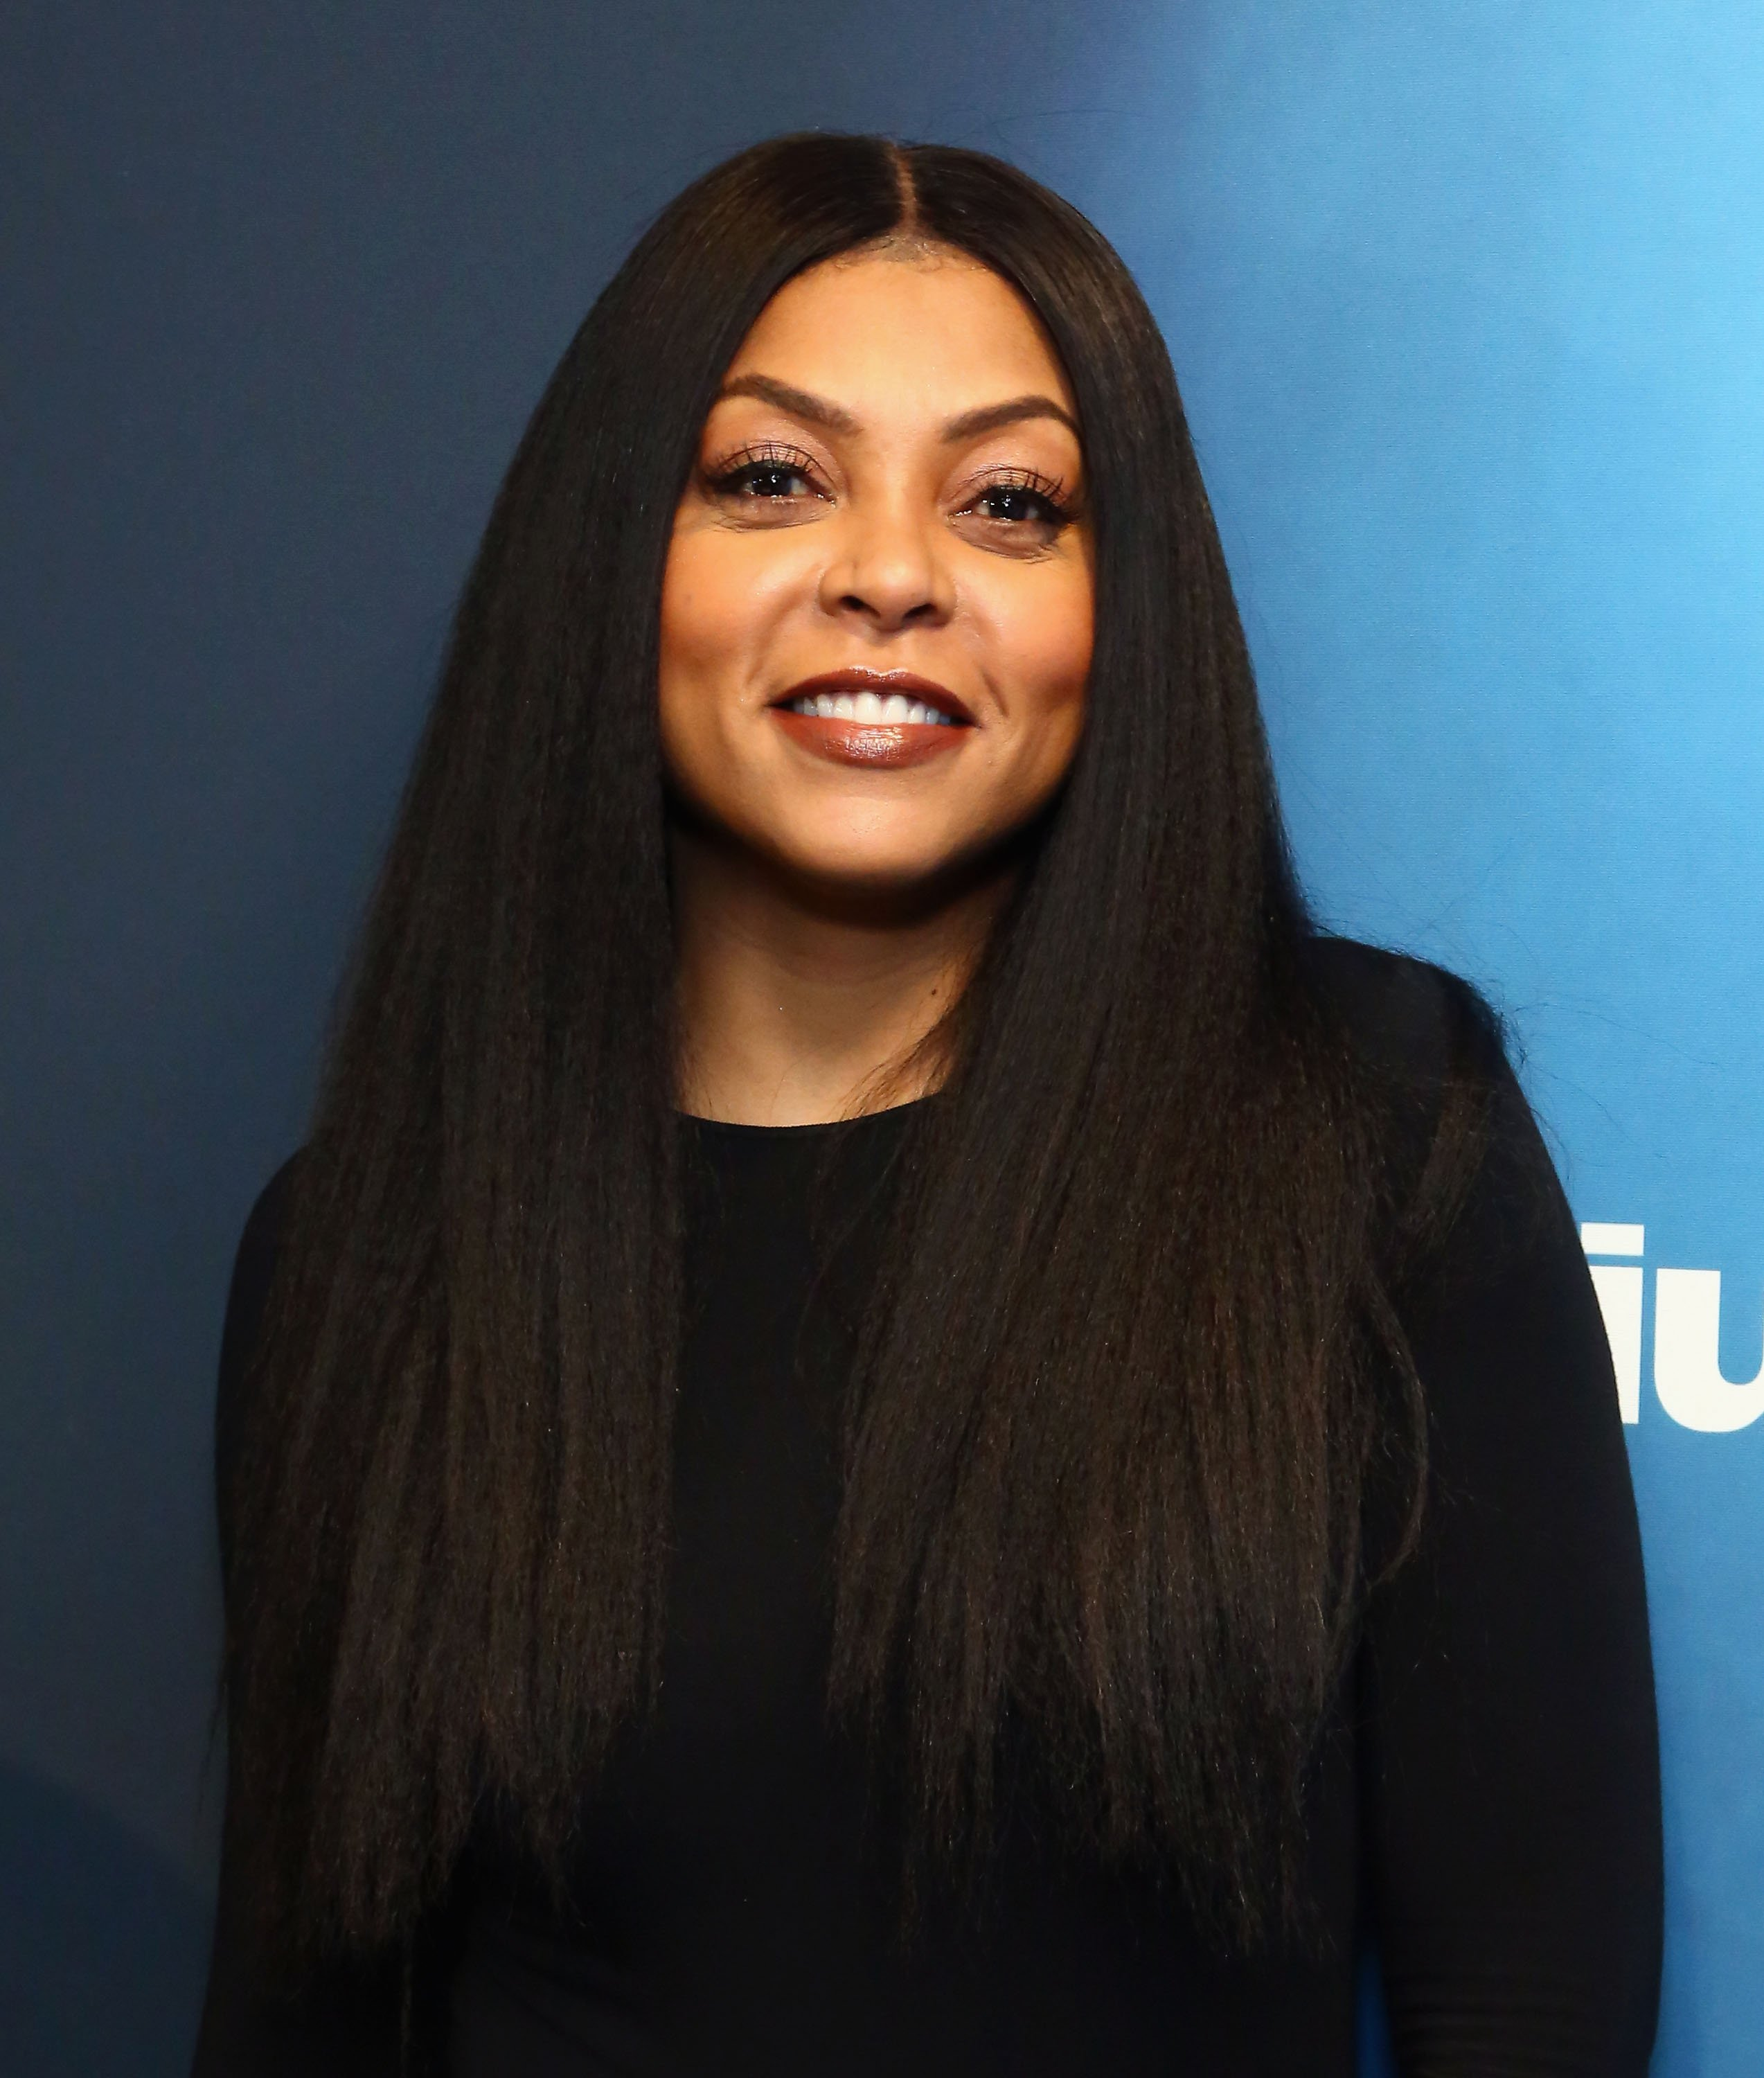 Taraji P. Henson visits the SiriusXM Studios on Feb. 04, 2019 in New York City | Photo: Getty Images